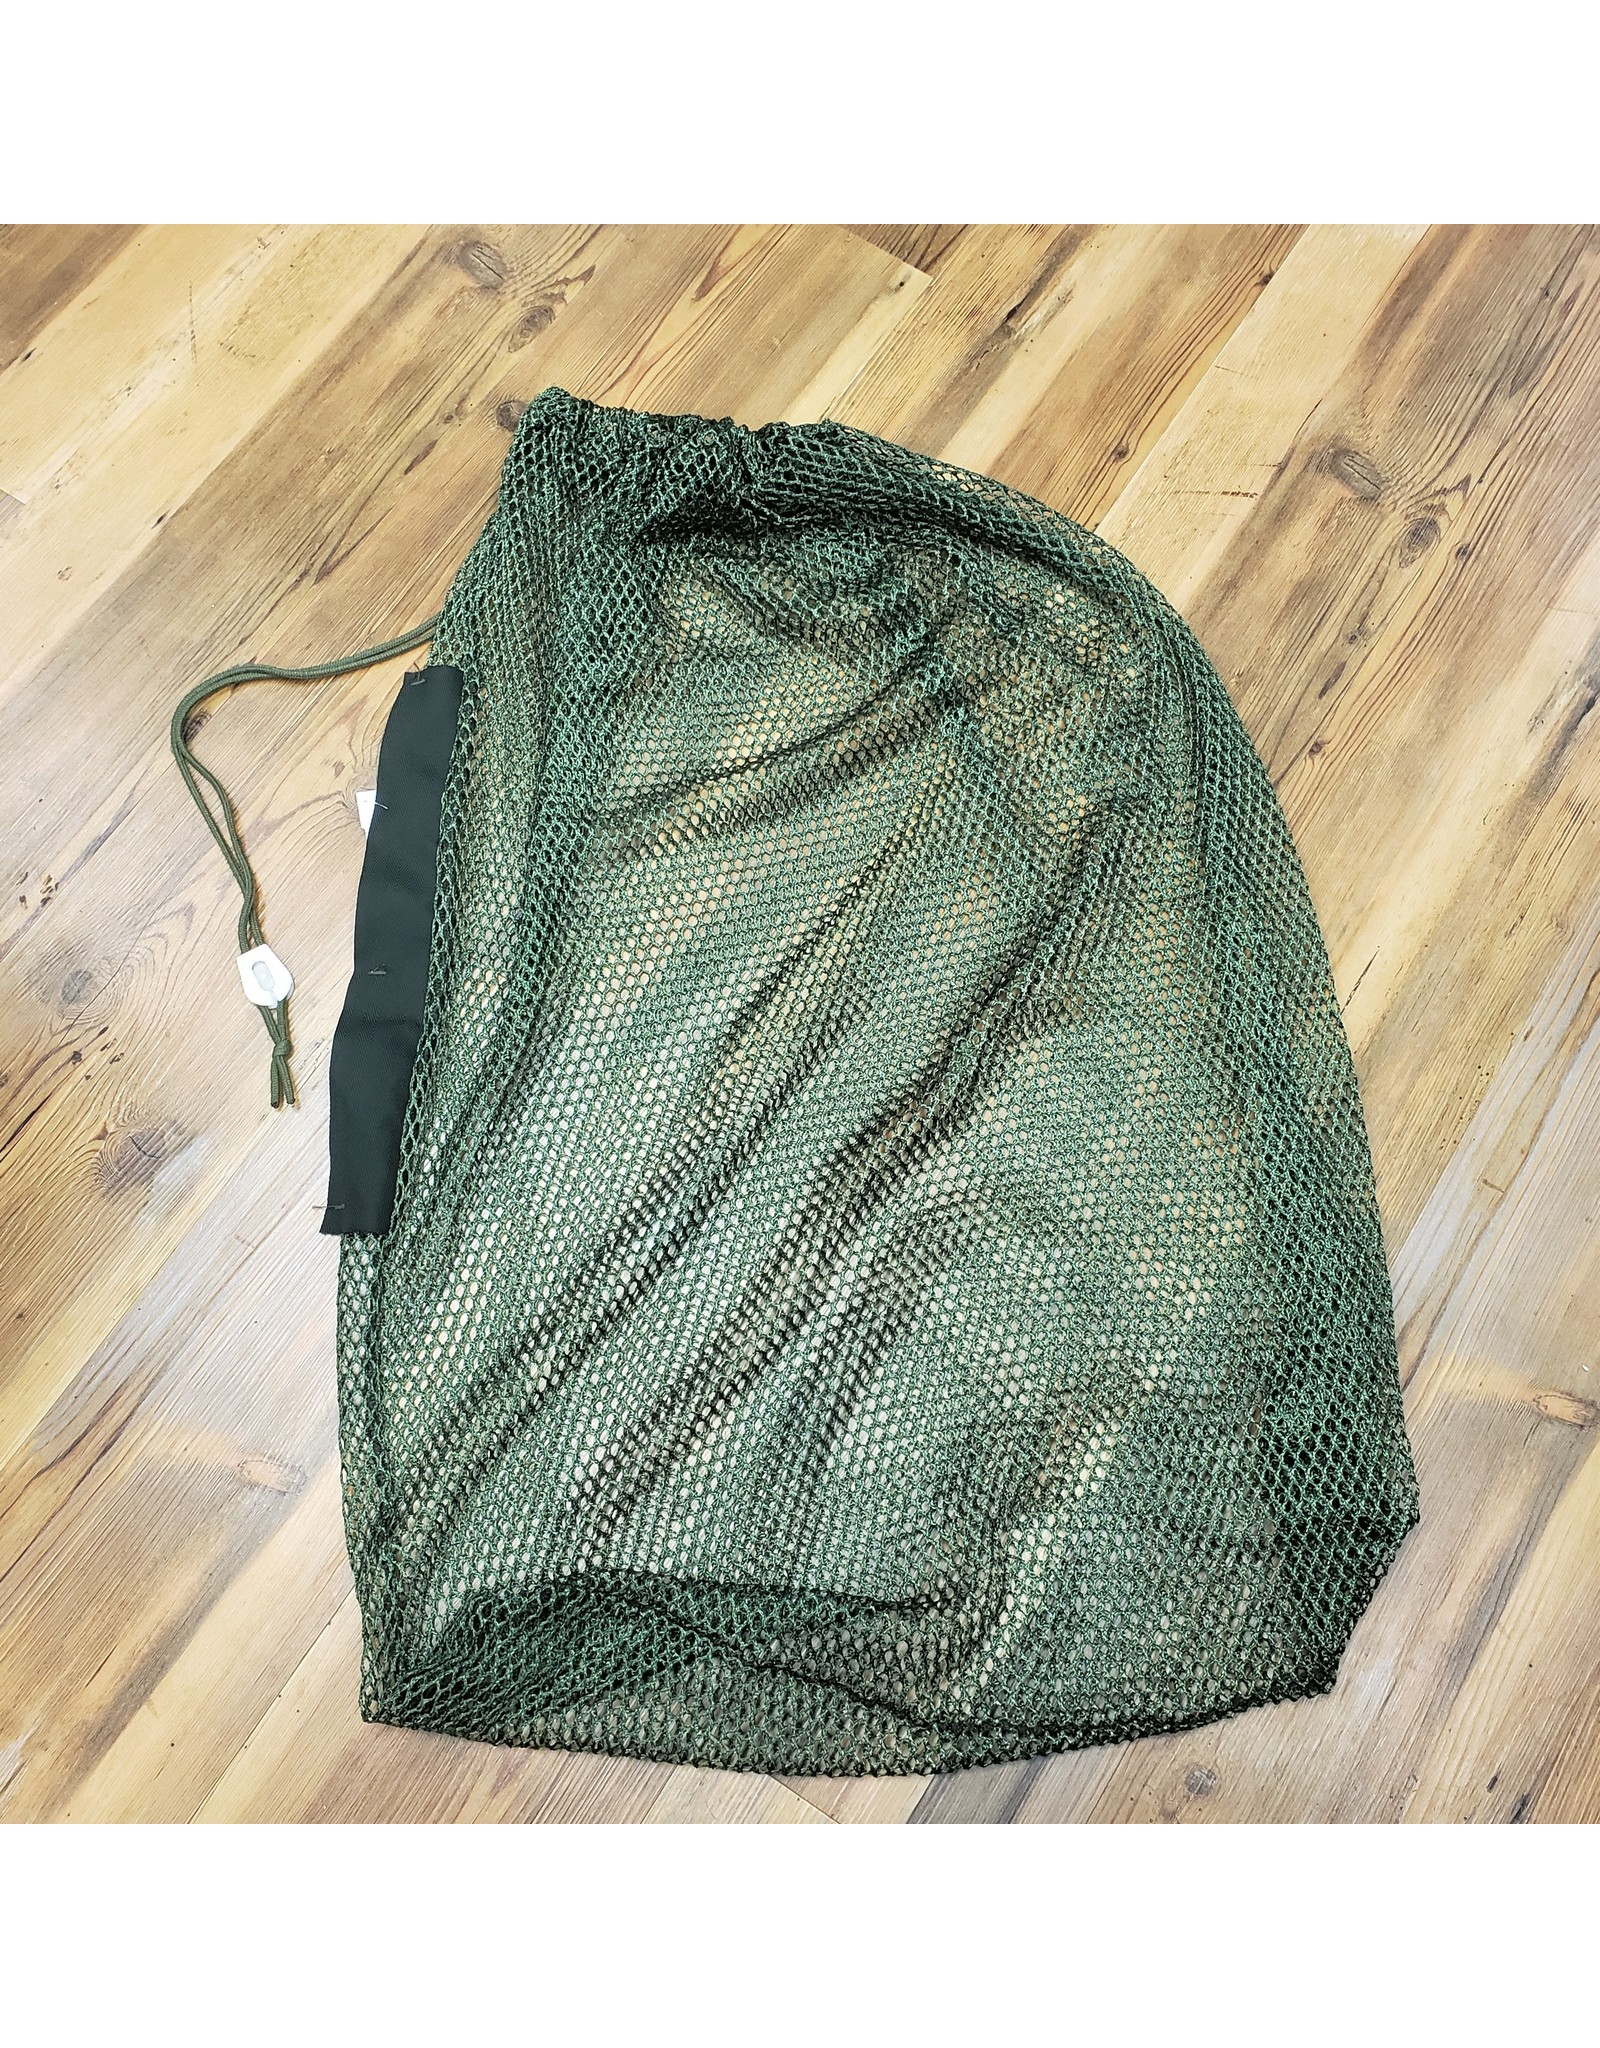 CANADIAN SURPLUS CANADIAN MESH USED LAUNDRY BAG OLIVE